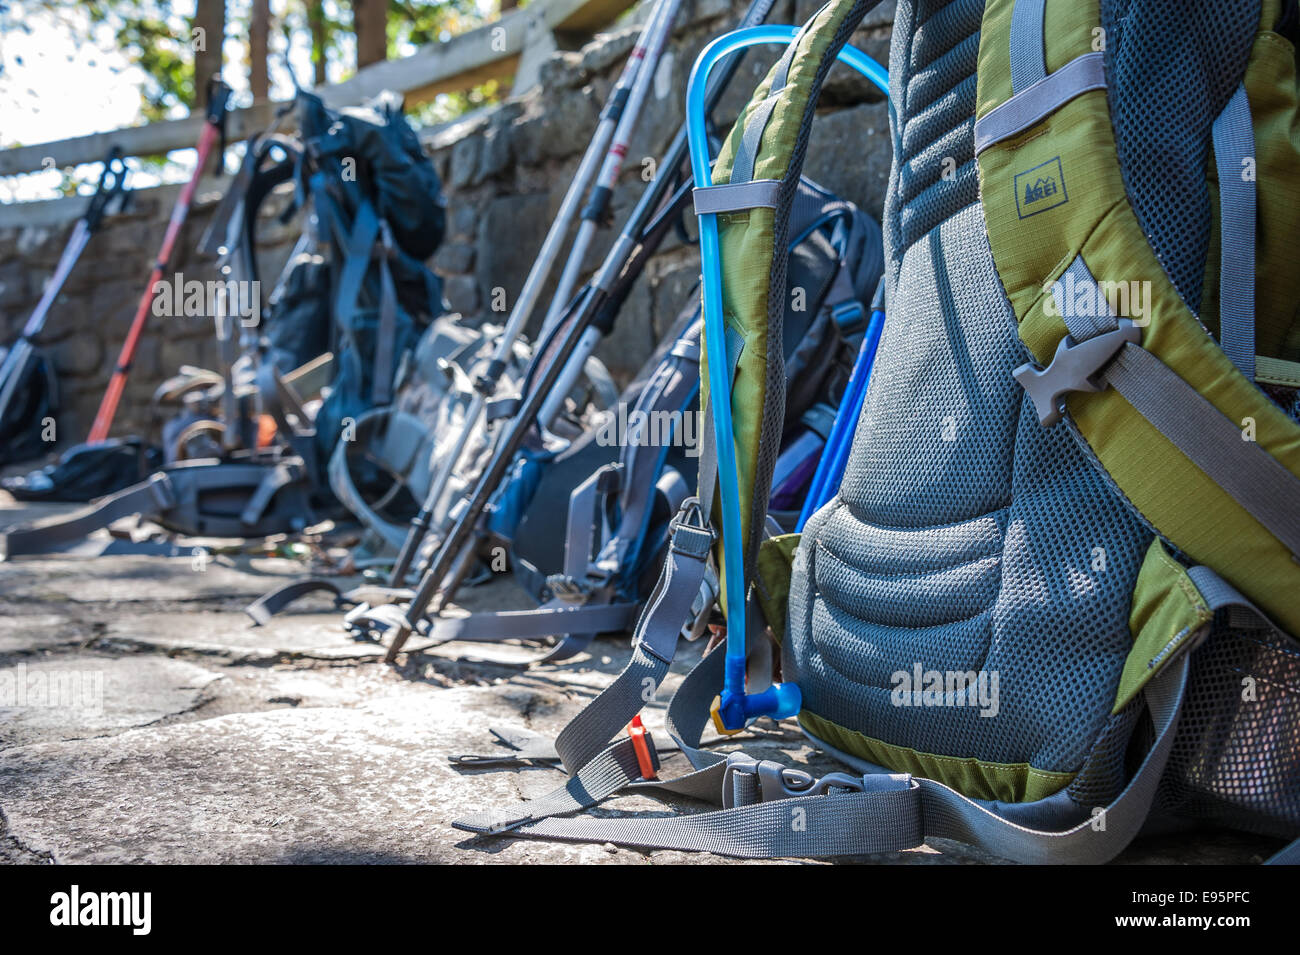 Hikers' backpacks and walking sticks line the stone wall of the overlook at Neels Gap on the Appalachian Trail - Stock Image